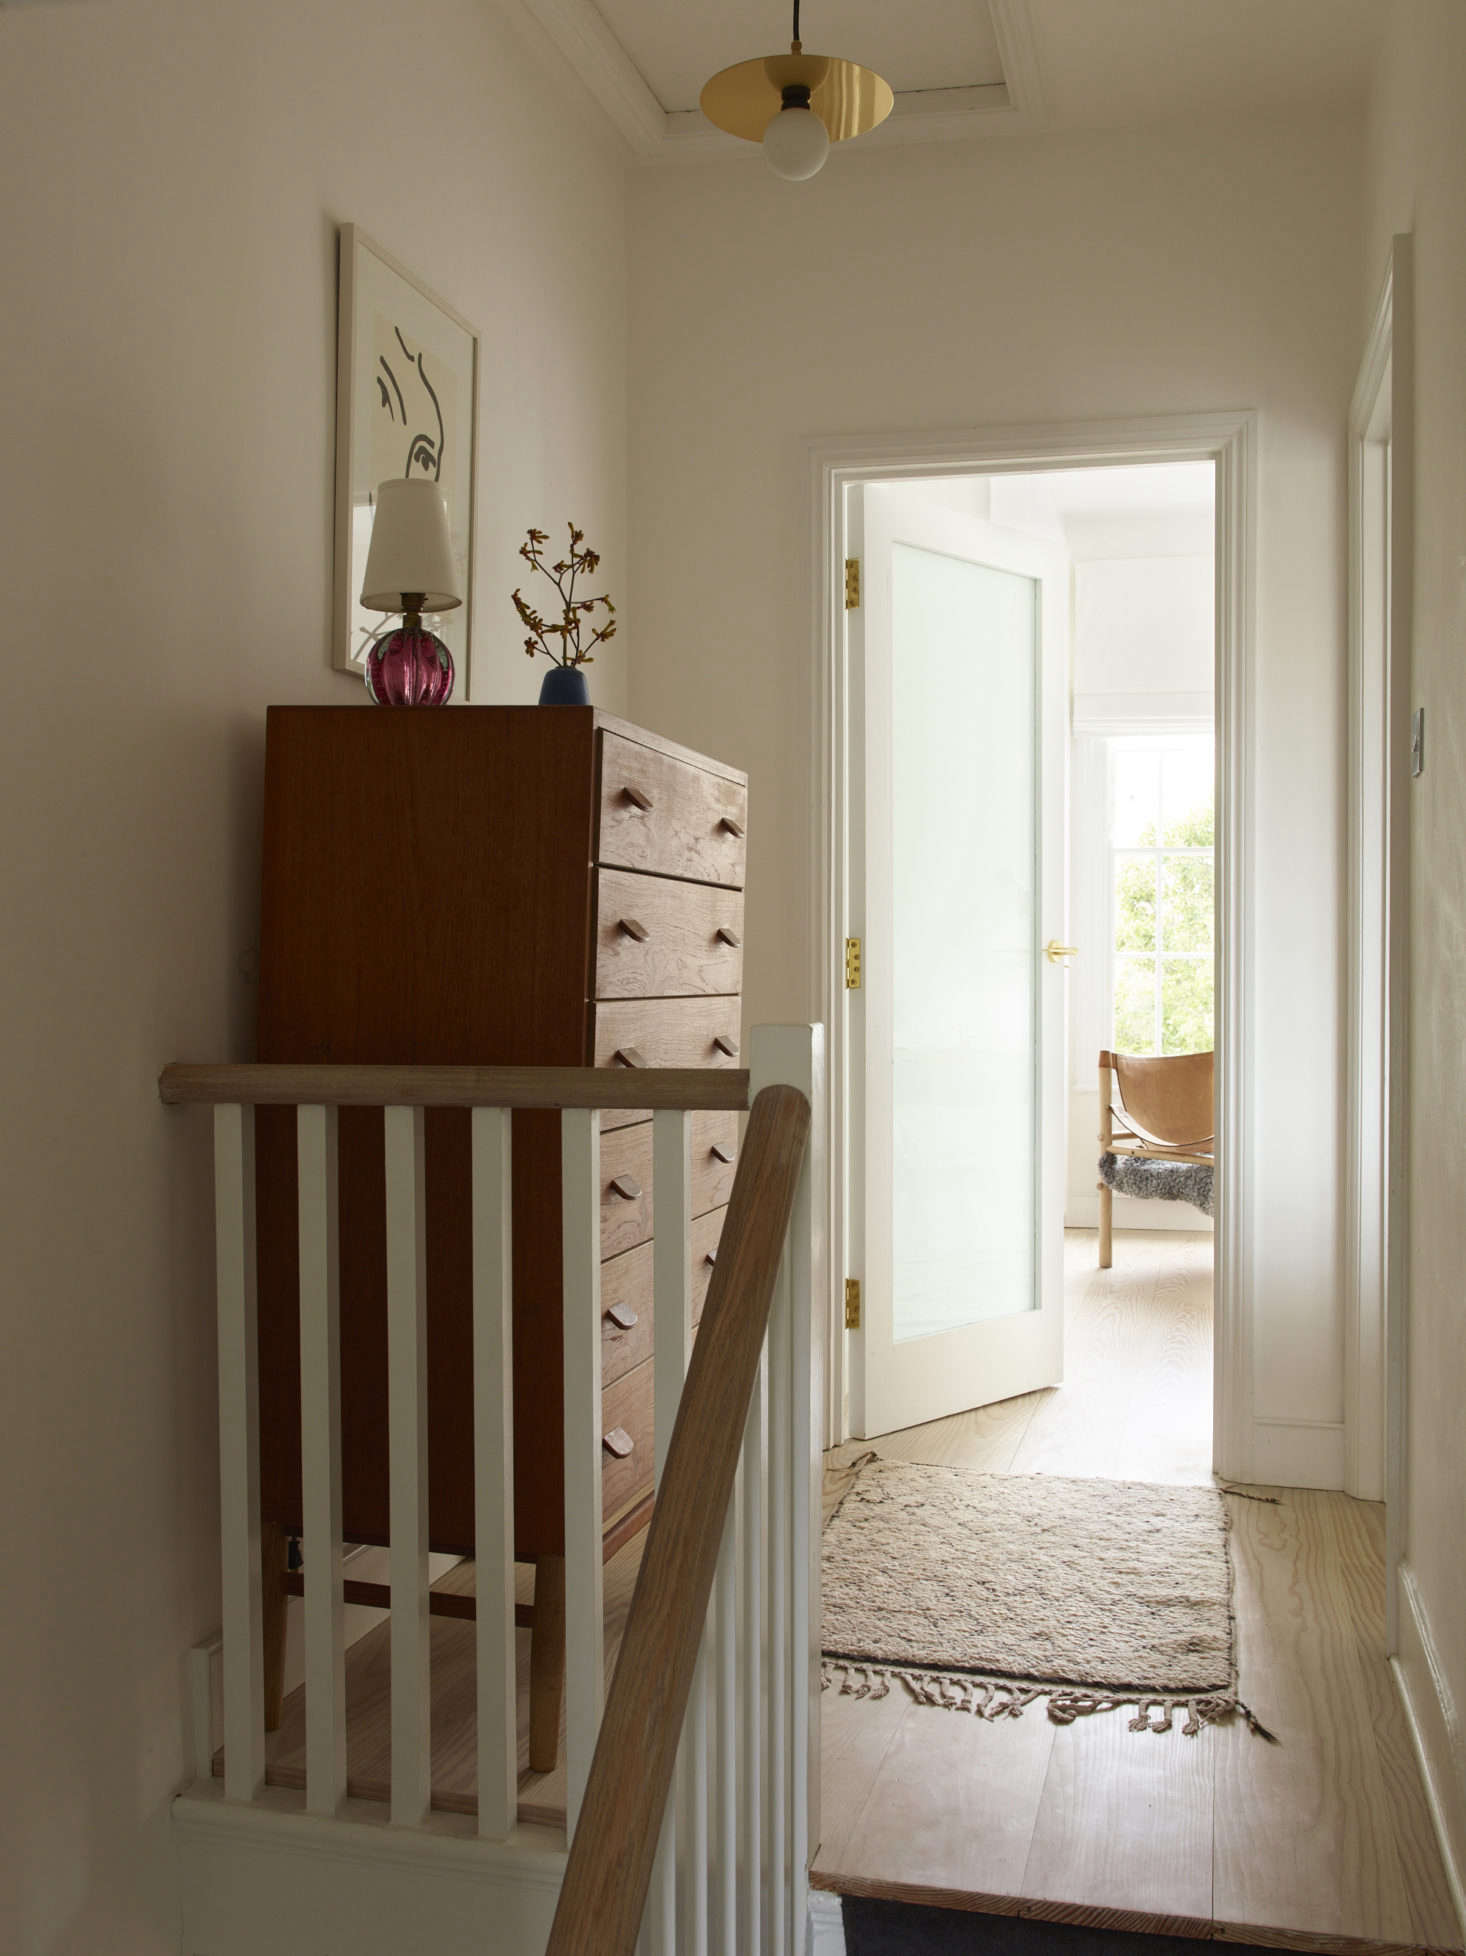 At the top of the stairs: a hanging pendant by Atelier Areti and, on the dresser, a pink Murano glass lamp from Etsy.